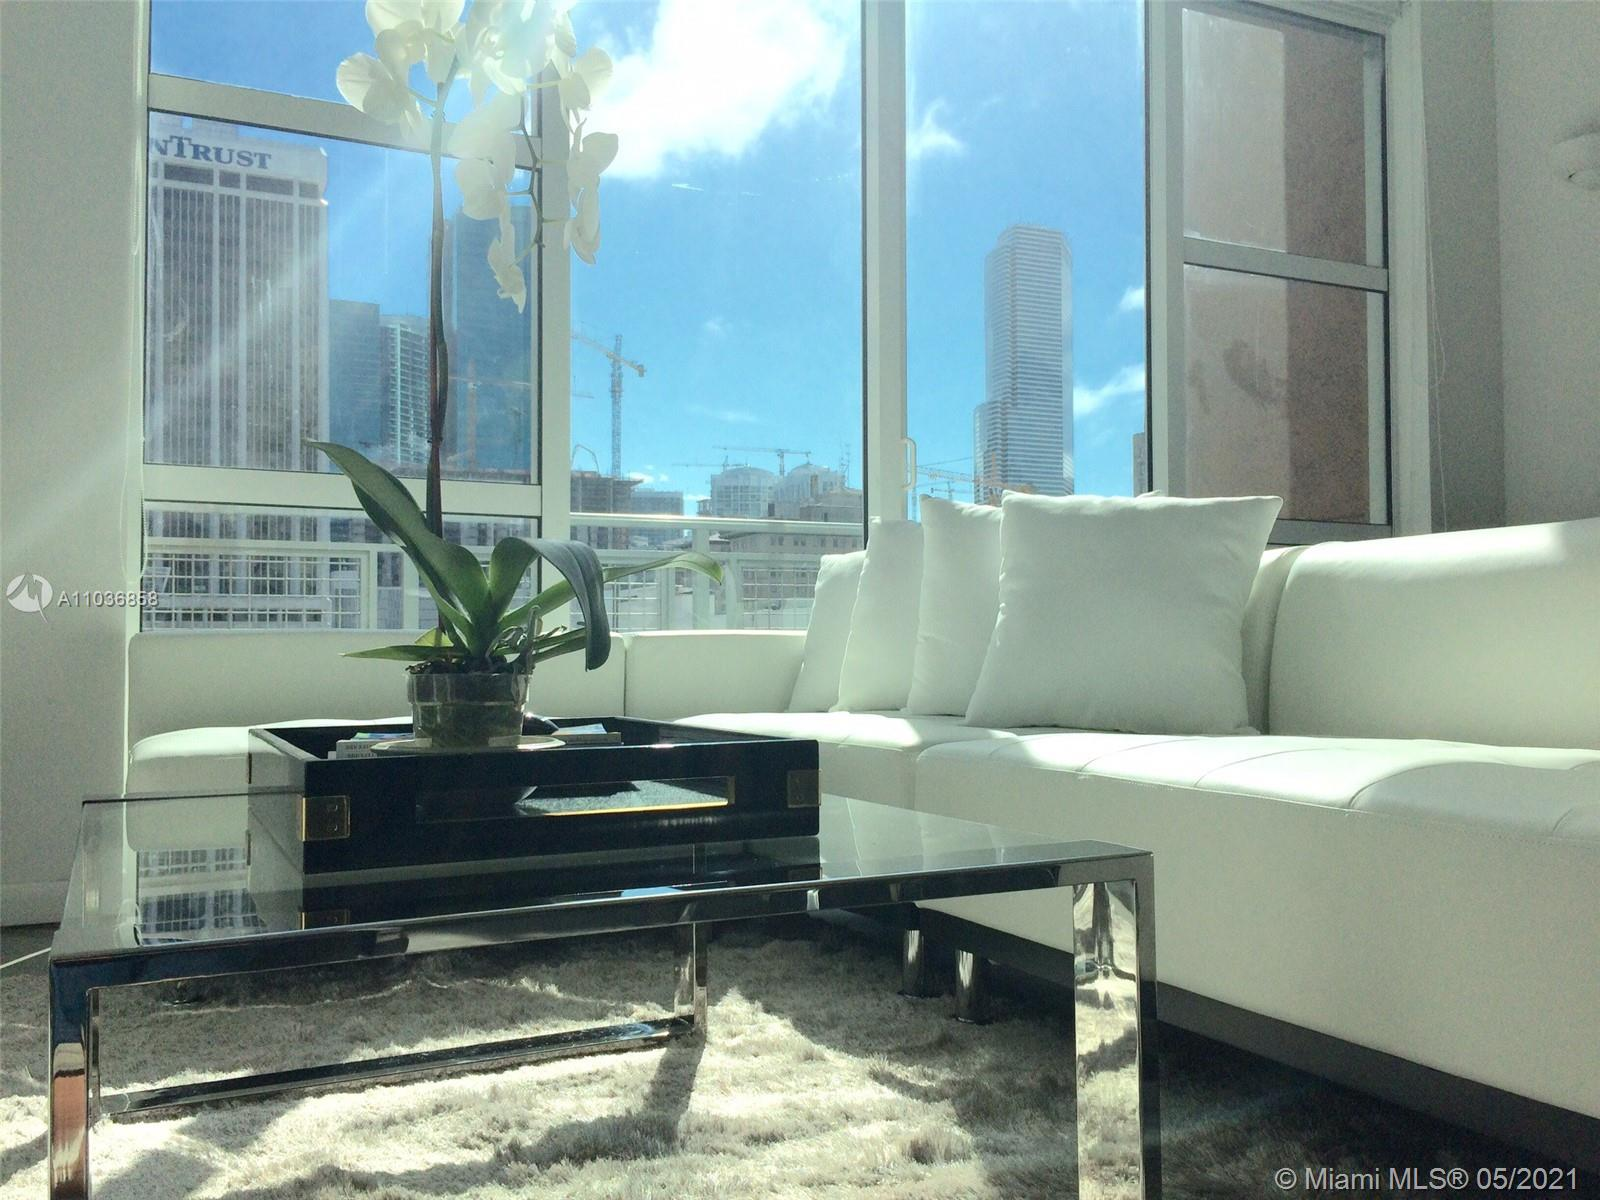 Vizcayne Two #620 - 253 NE 2nd St #620, Miami, FL 33132